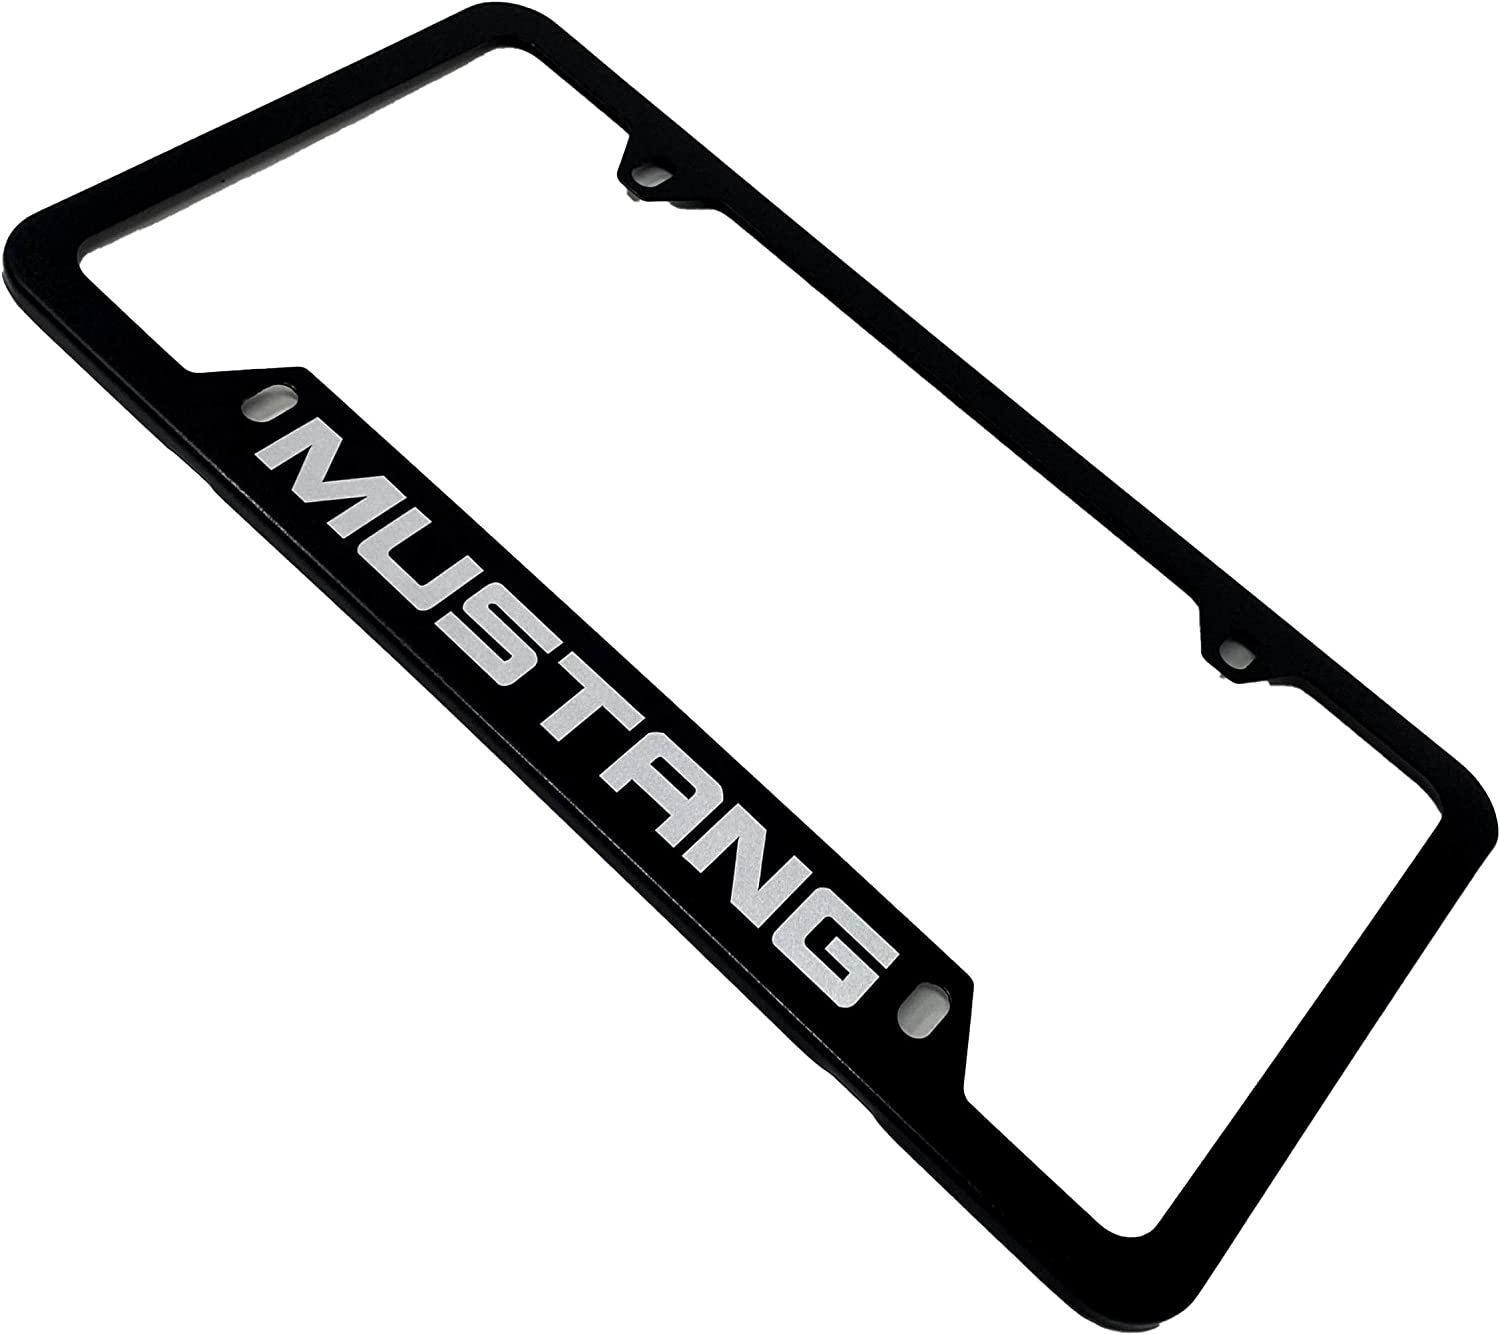 Tailgate Rear Trunk Pack of 1 X5 REAR STICKER GLOSS BLACK 160MM Emblem Badge 3D Replacement For M POWER SERIES 3 4 5 6 7 8 MOTORSPORT ETC Decal Sticker Fender RENGVO